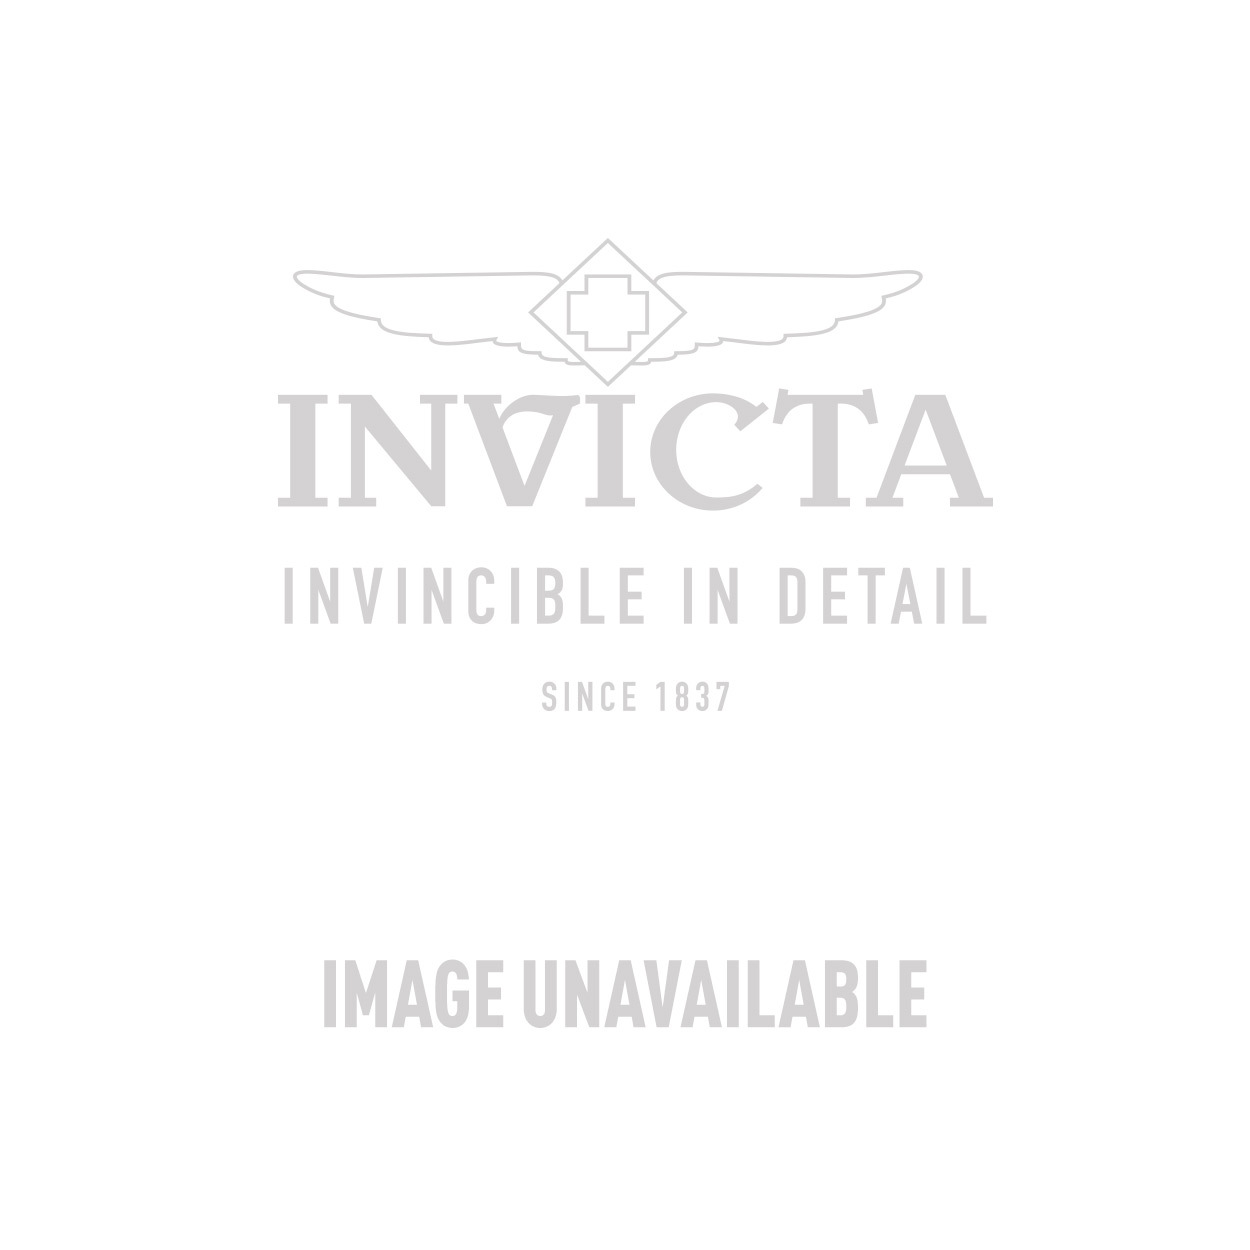 Invicta I-Force Quartz Watch - Black, Stainless Steel case with Black tone Silicone band - Model 16900